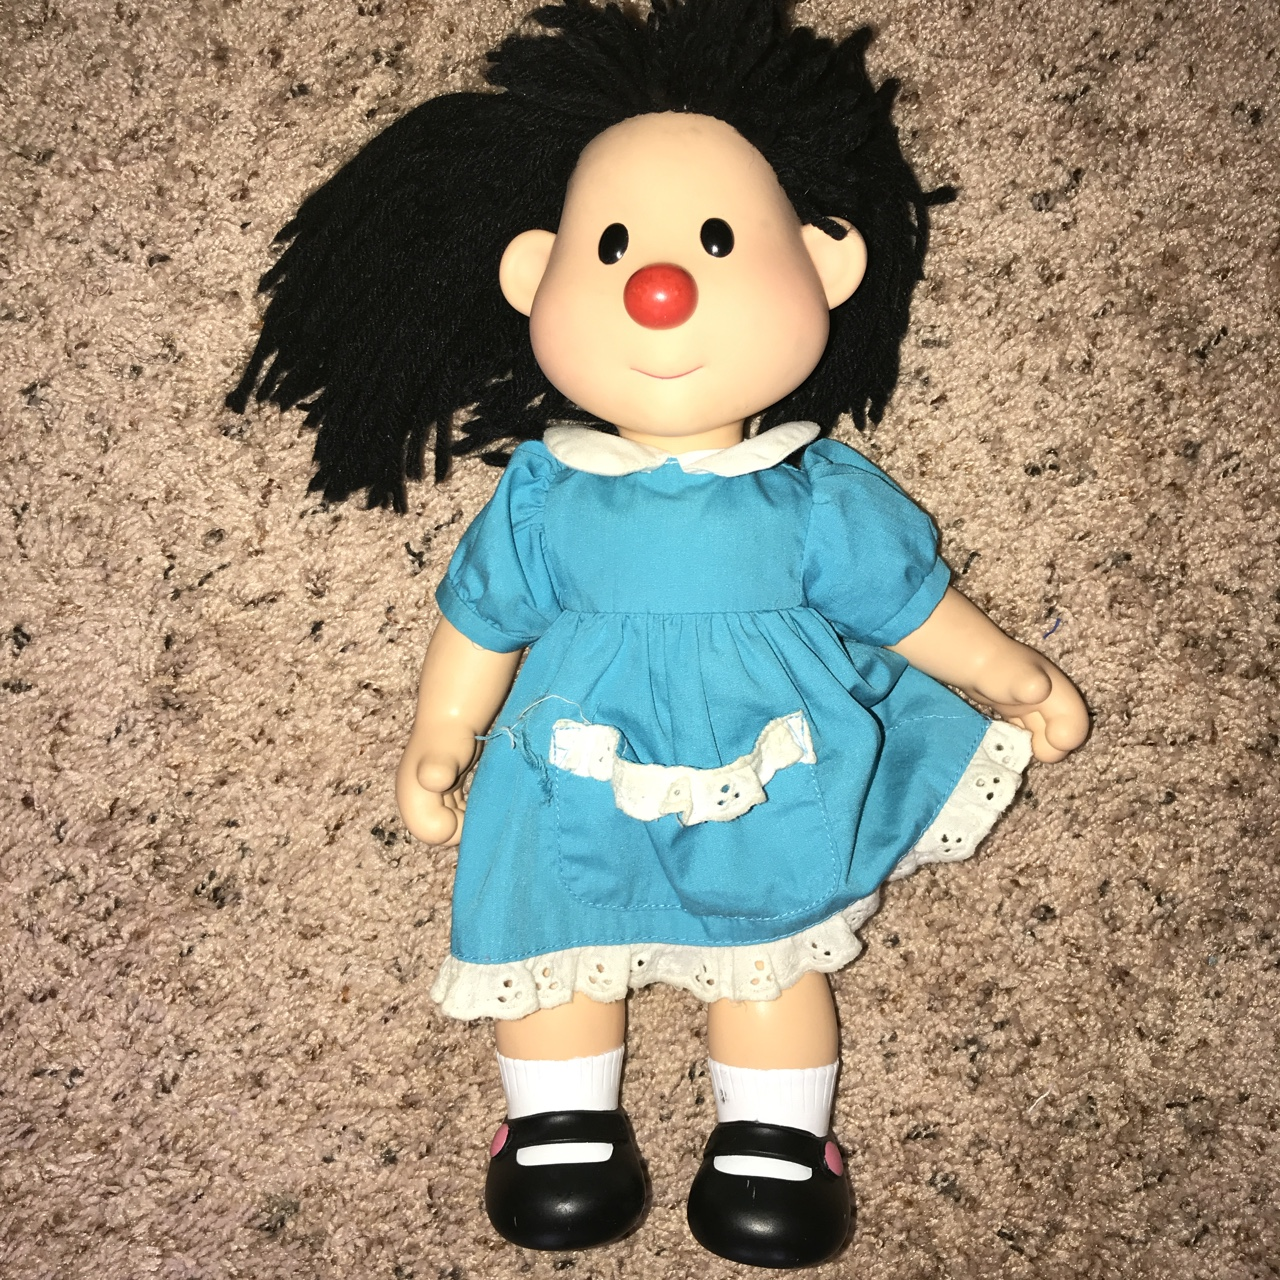 Superb Molly Doll From The Show The Big Comfy Couch From Depop Ibusinesslaw Wood Chair Design Ideas Ibusinesslaworg